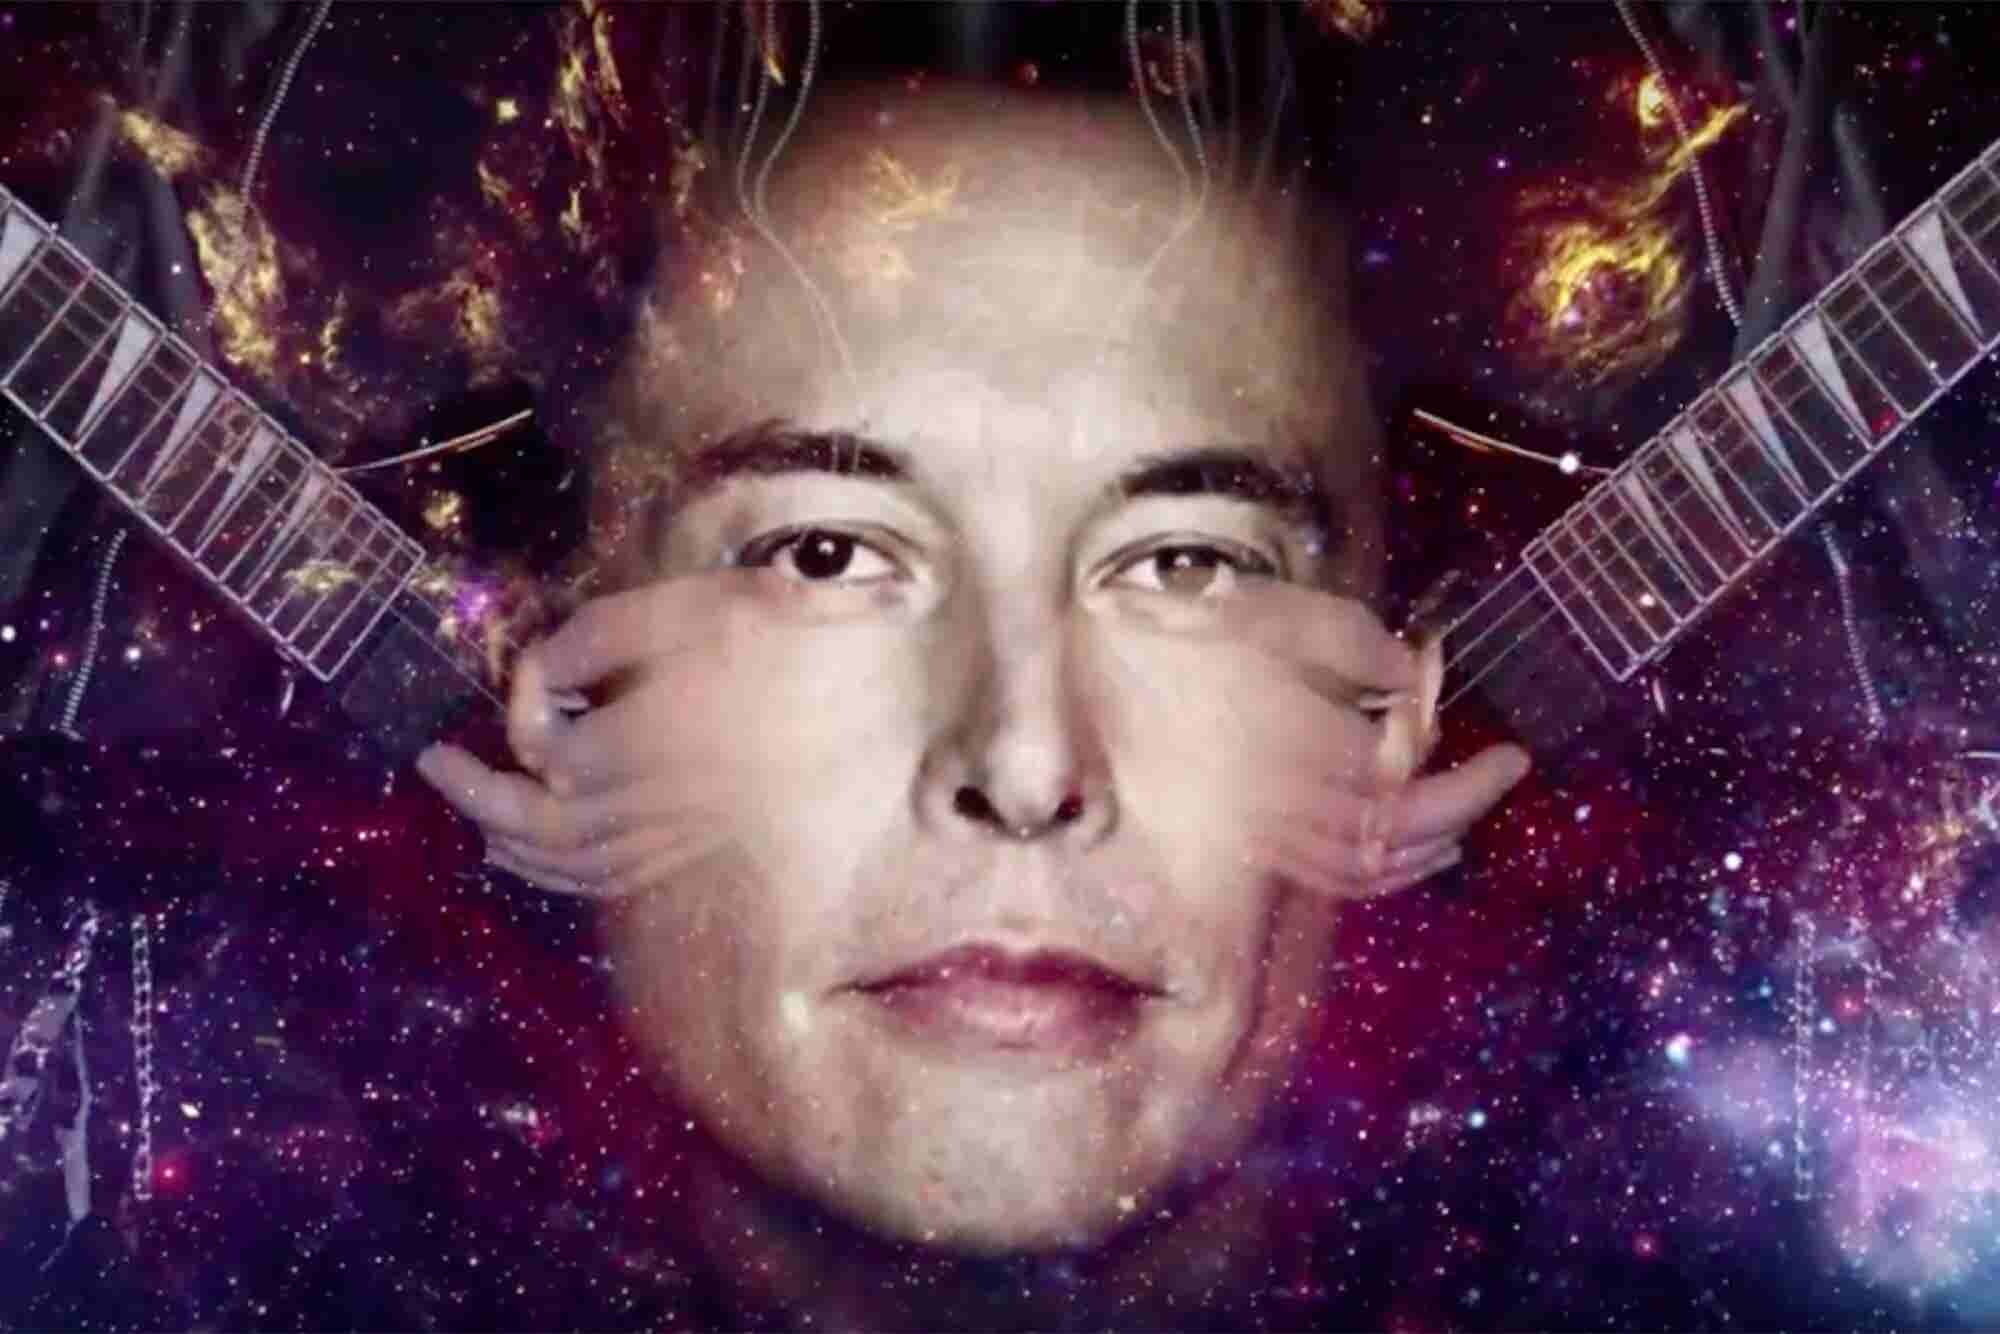 This Elon Musk Heavy Metal Music Video Will Rock You Into the Future